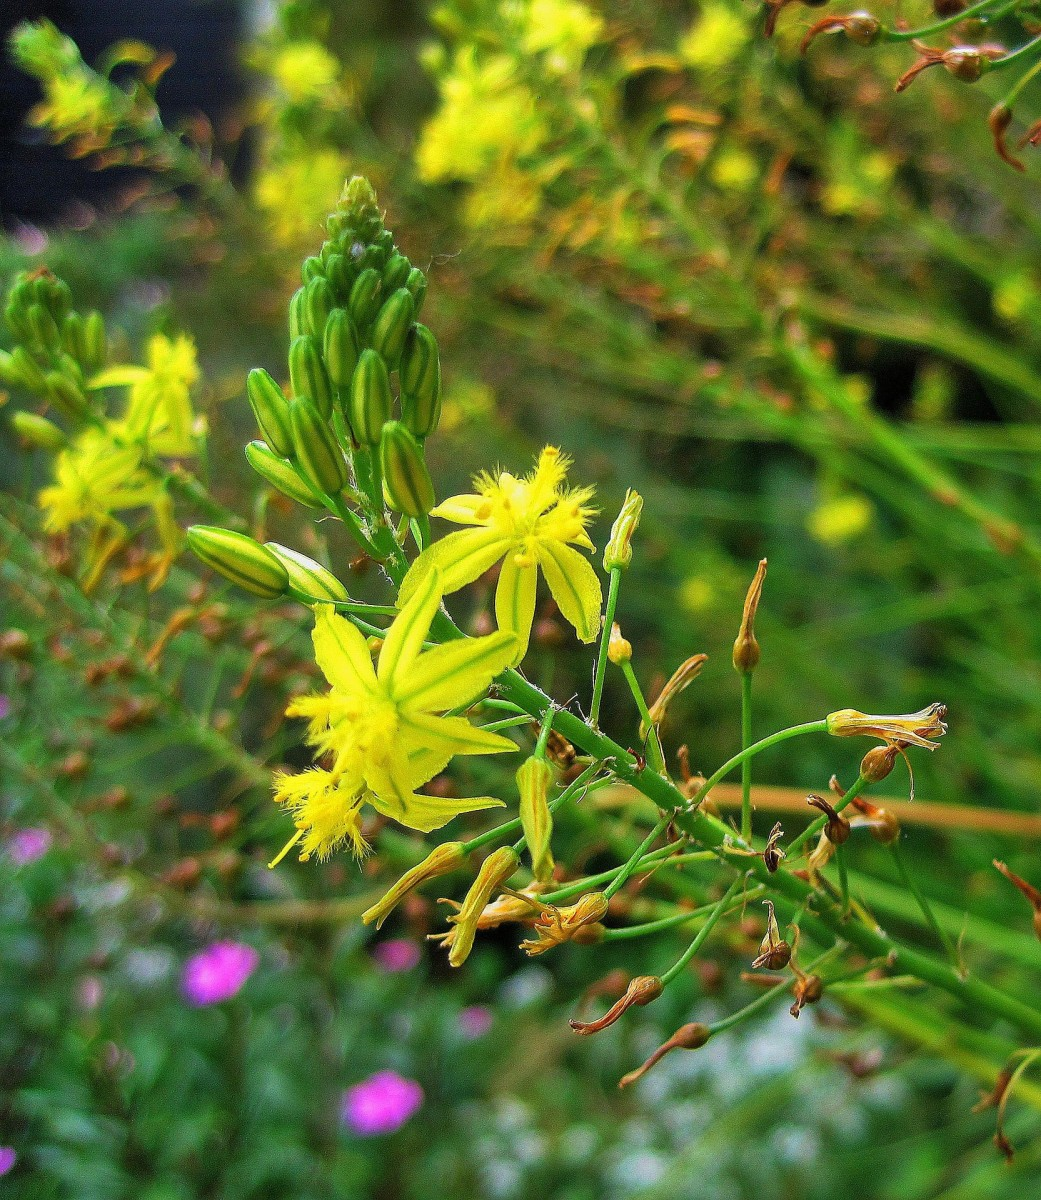 The African Bulbine is a succulent with yellow or orange flowers.